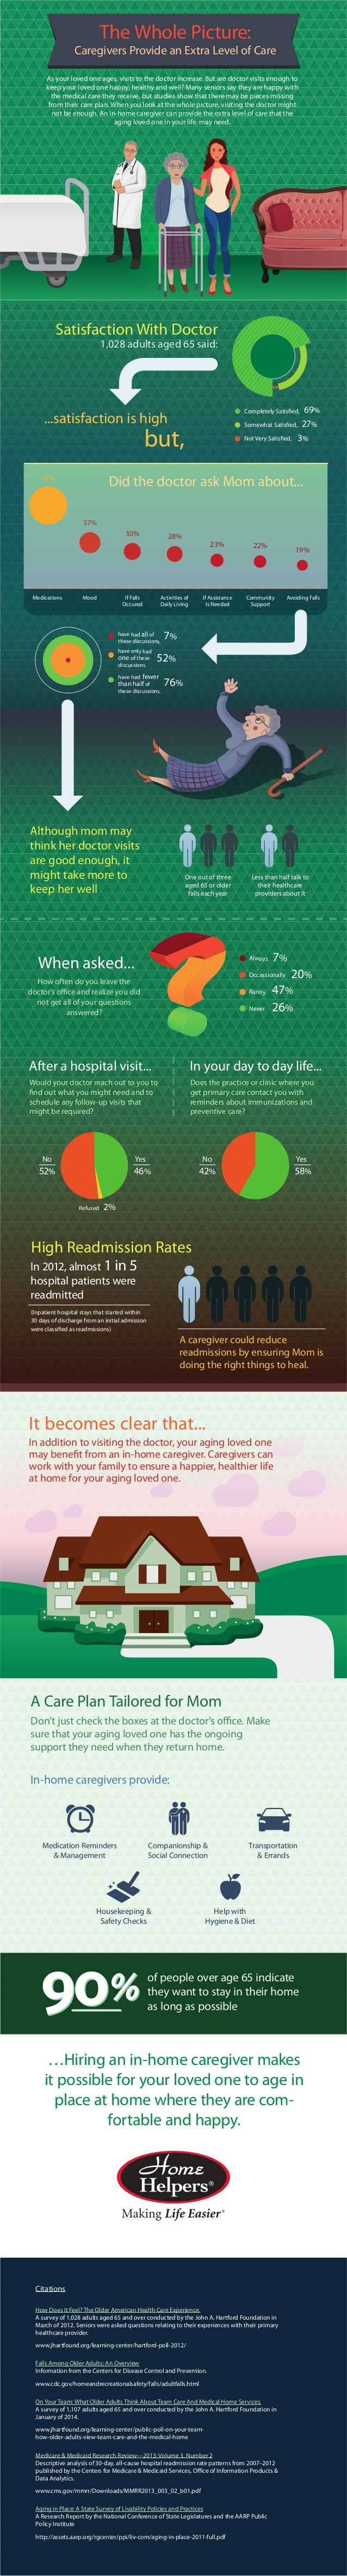 Satisfaction With Doctor 1,028 adults aged 65 said: ...satisfaction is high but, When asked... How often do you leave the ...